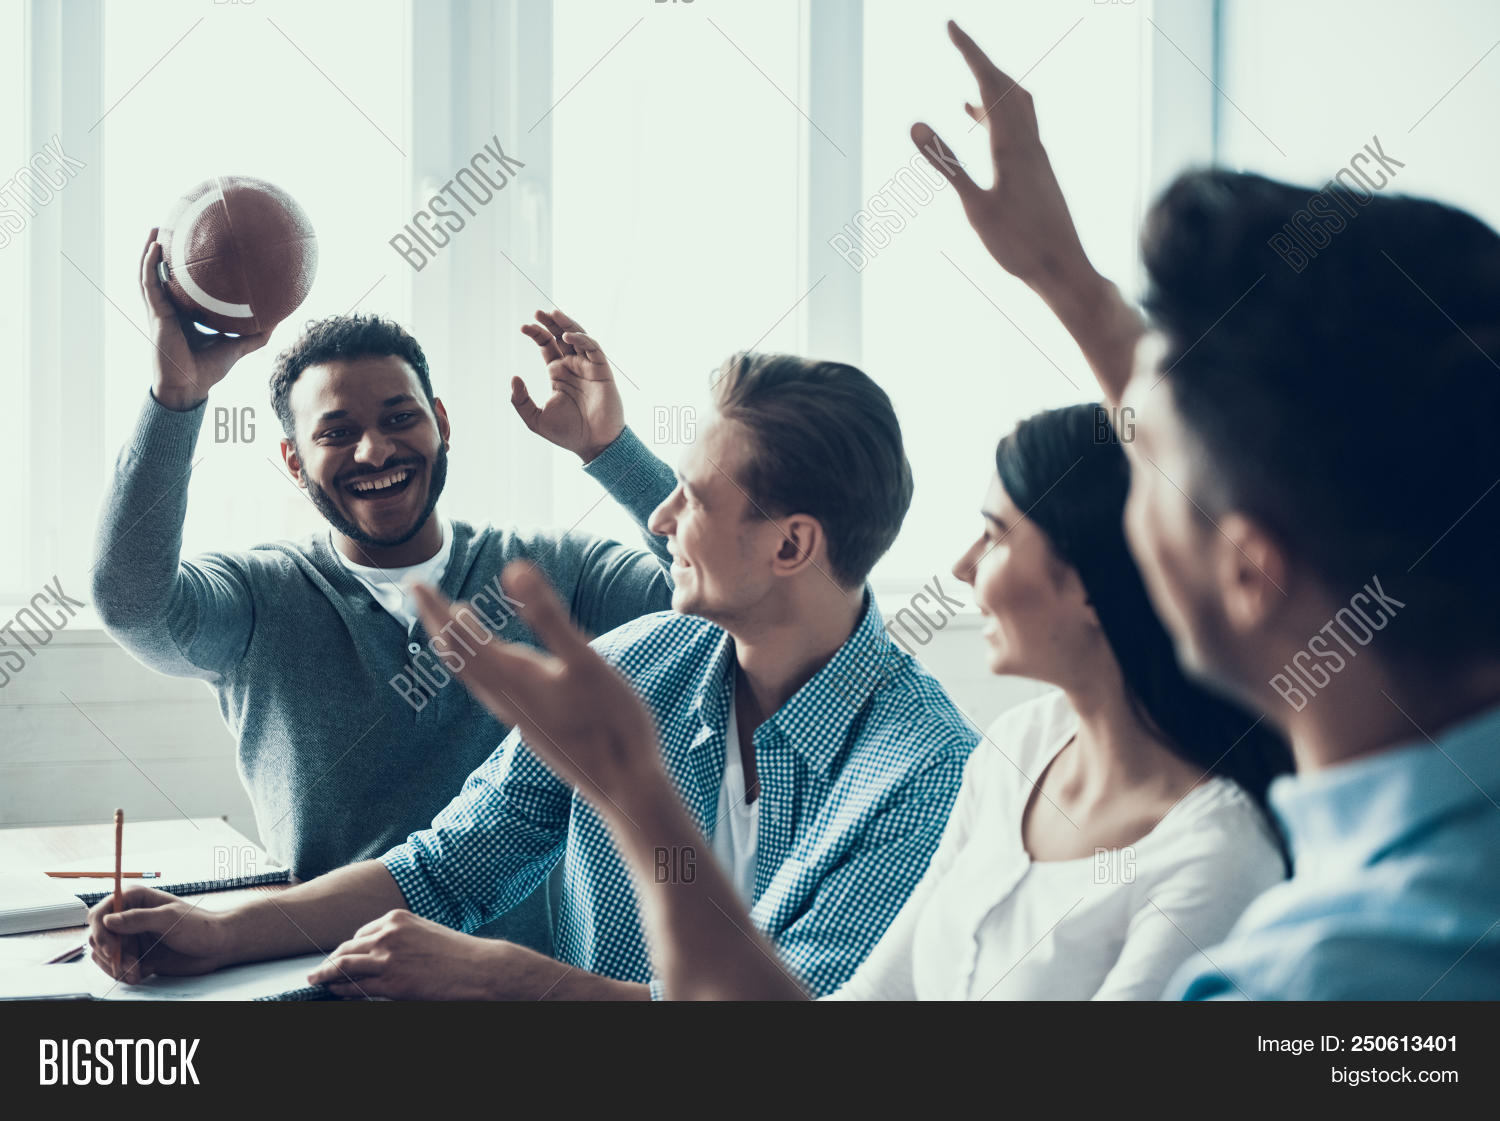 adult,american,ball,beautiful,boy,class,classroom,college,concept,desk,education,equipment,female,football,friends,game,girl,group,guy,handsome,happy,holding,indoor,knowledge,learn,learning,leisure,lesson,male,man,men,multiethnic,notes,pencil,people,play,player,rugby,smiling,sport,student,team,teenager,together,women,writing,young,youth